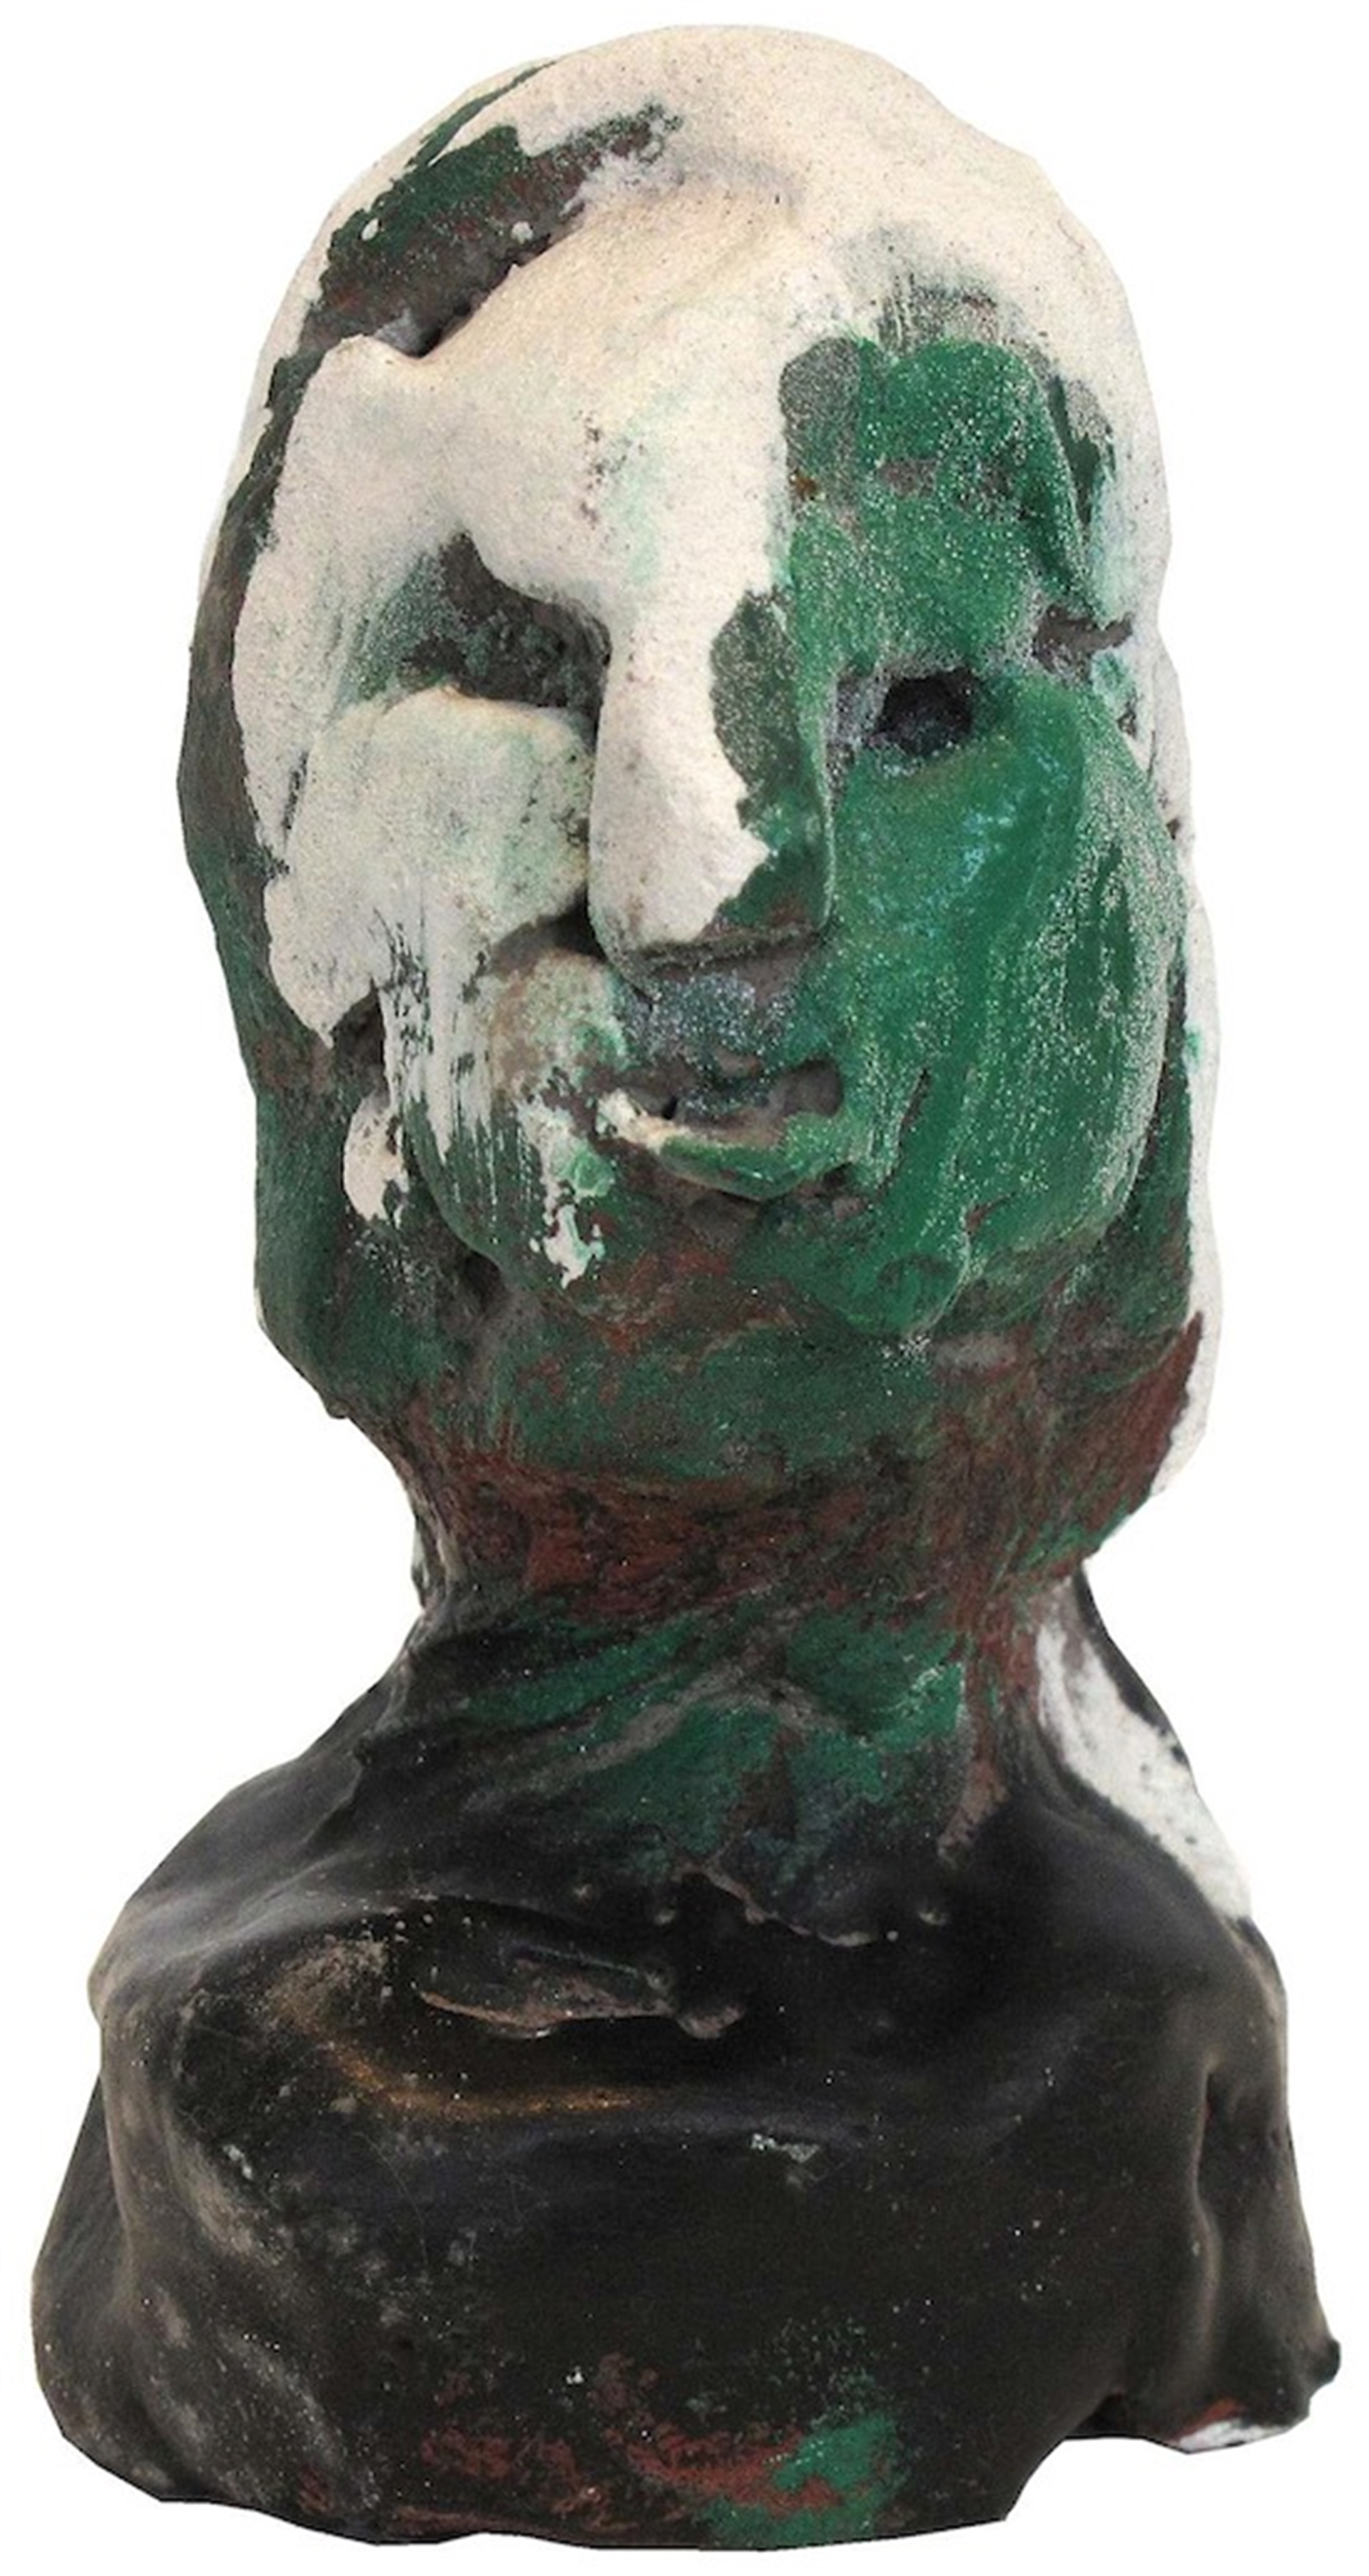 Green Face White Hair by James Havard